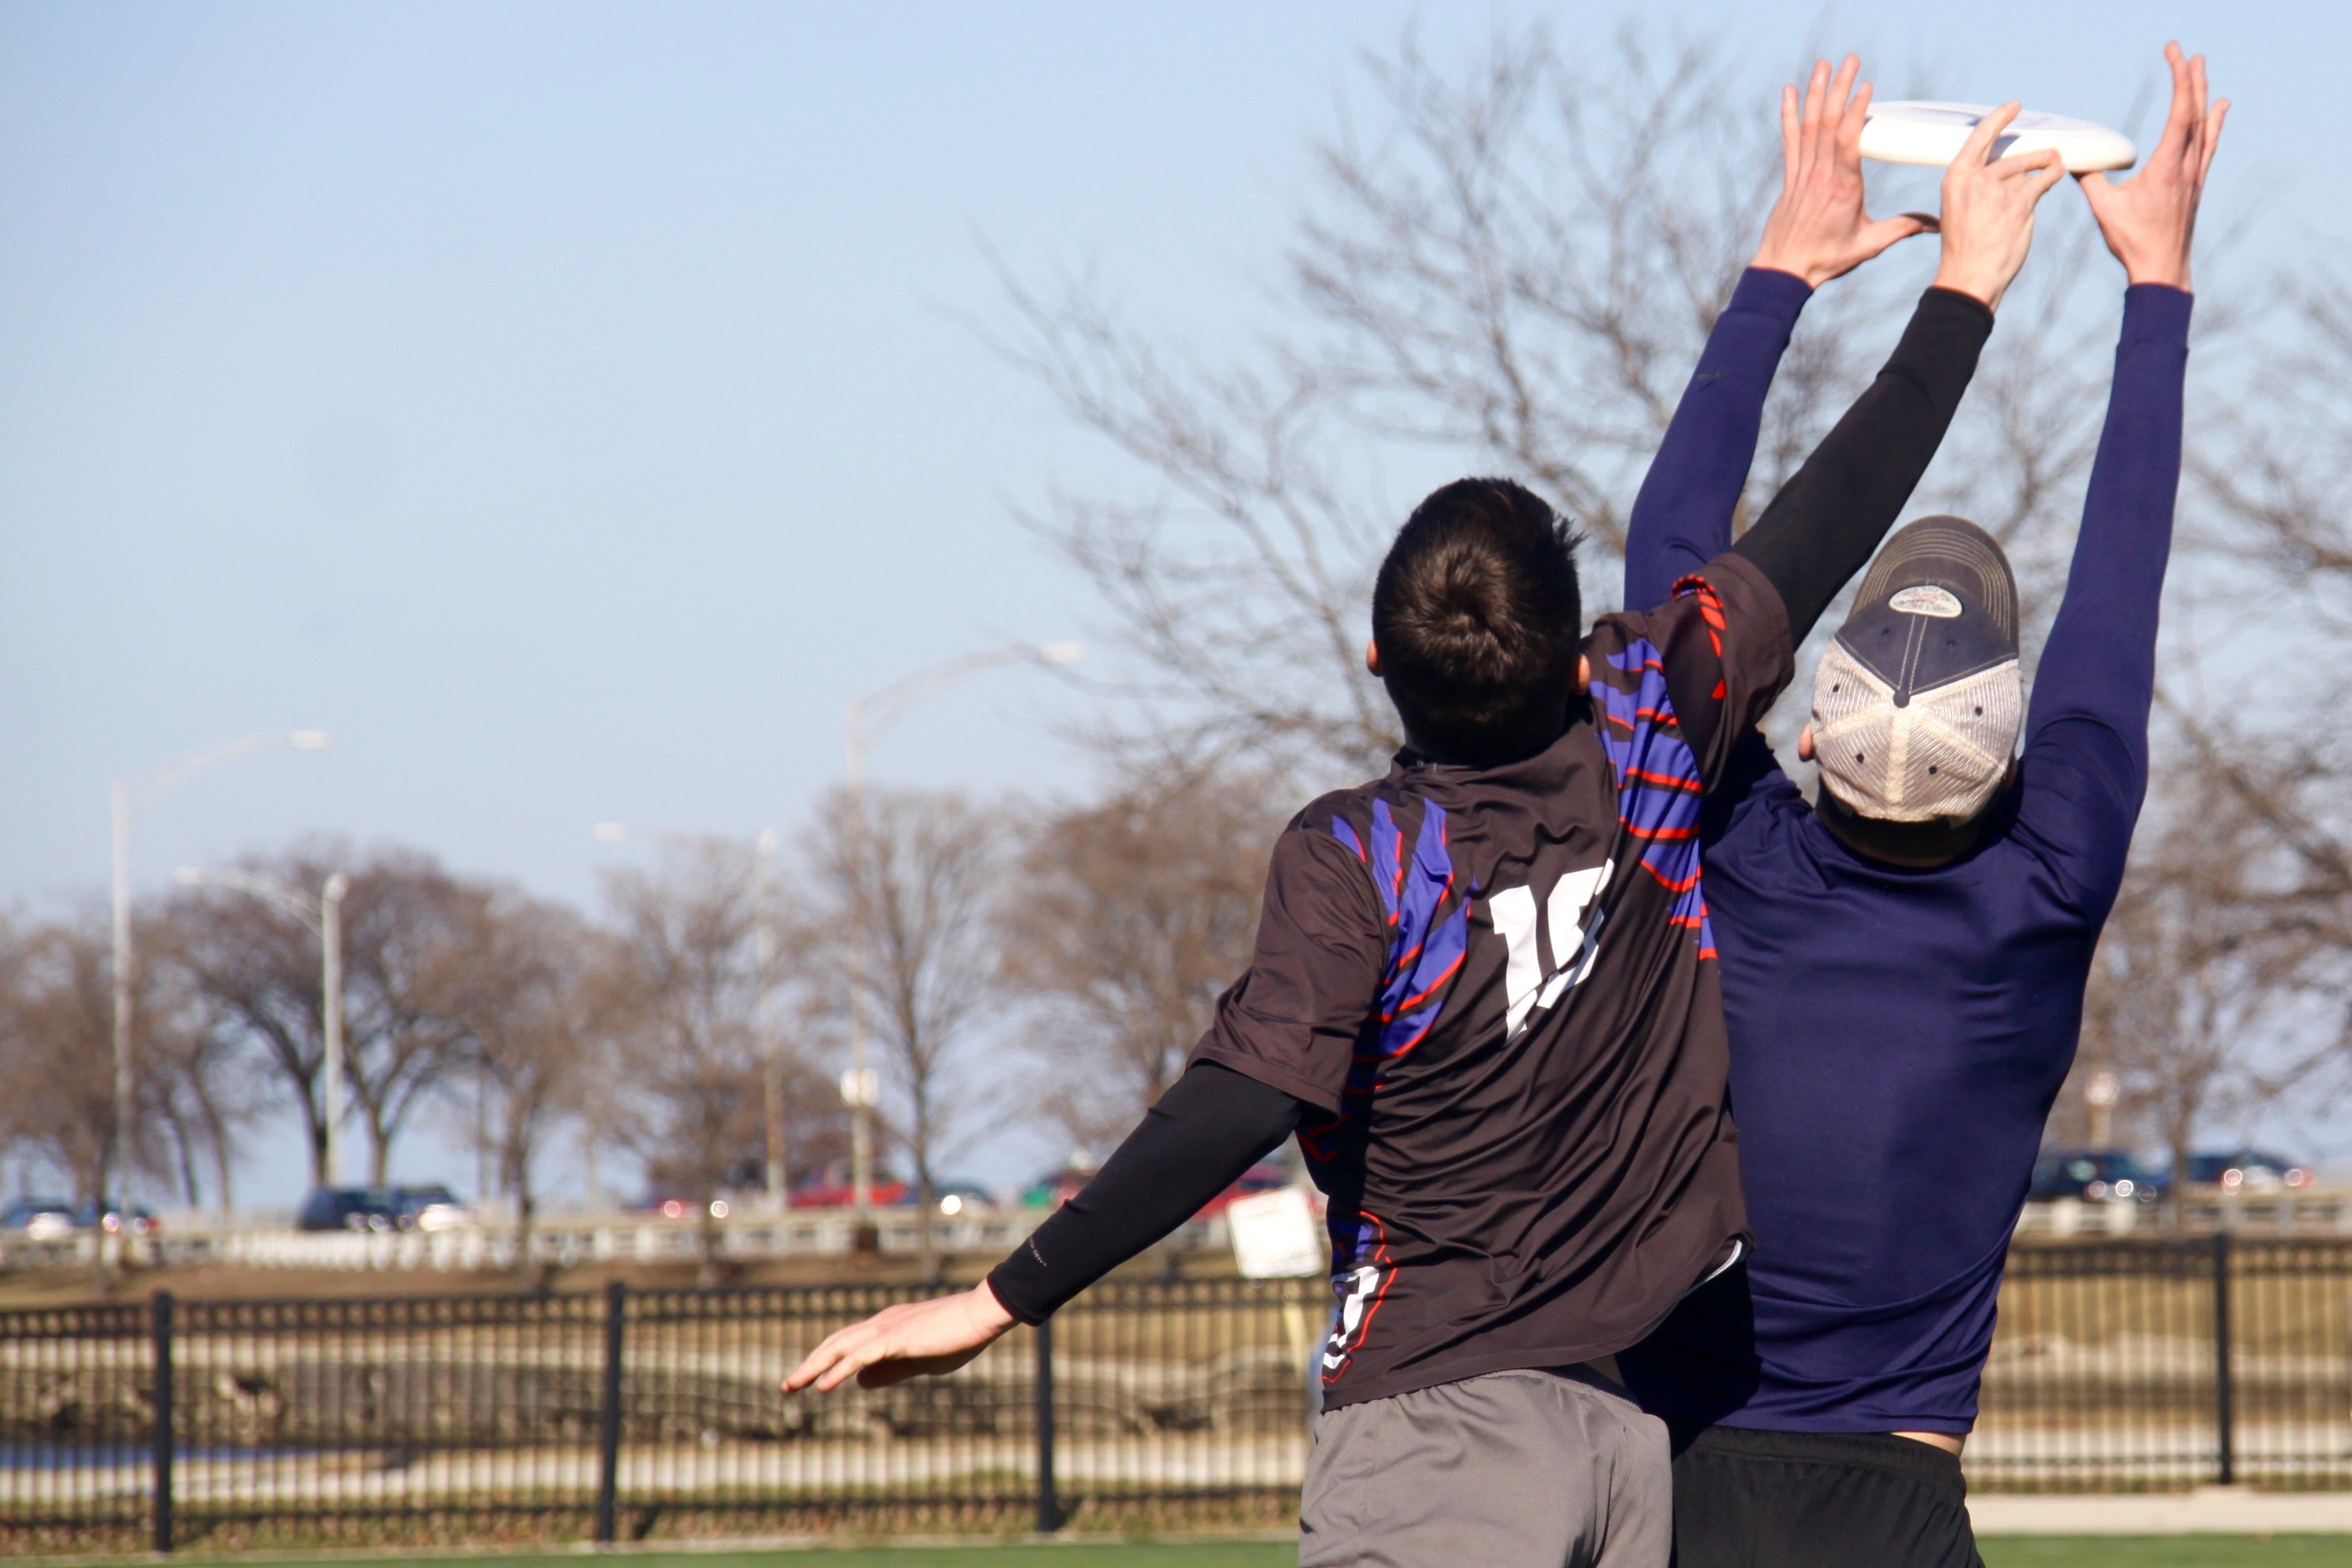 Jake Dremann attempts to out jump Mike Prasauskas during a one-on-one drill at a DePaul Ultimate Club practice on Jan. 21, 2017. (Photo/Ben Rains)